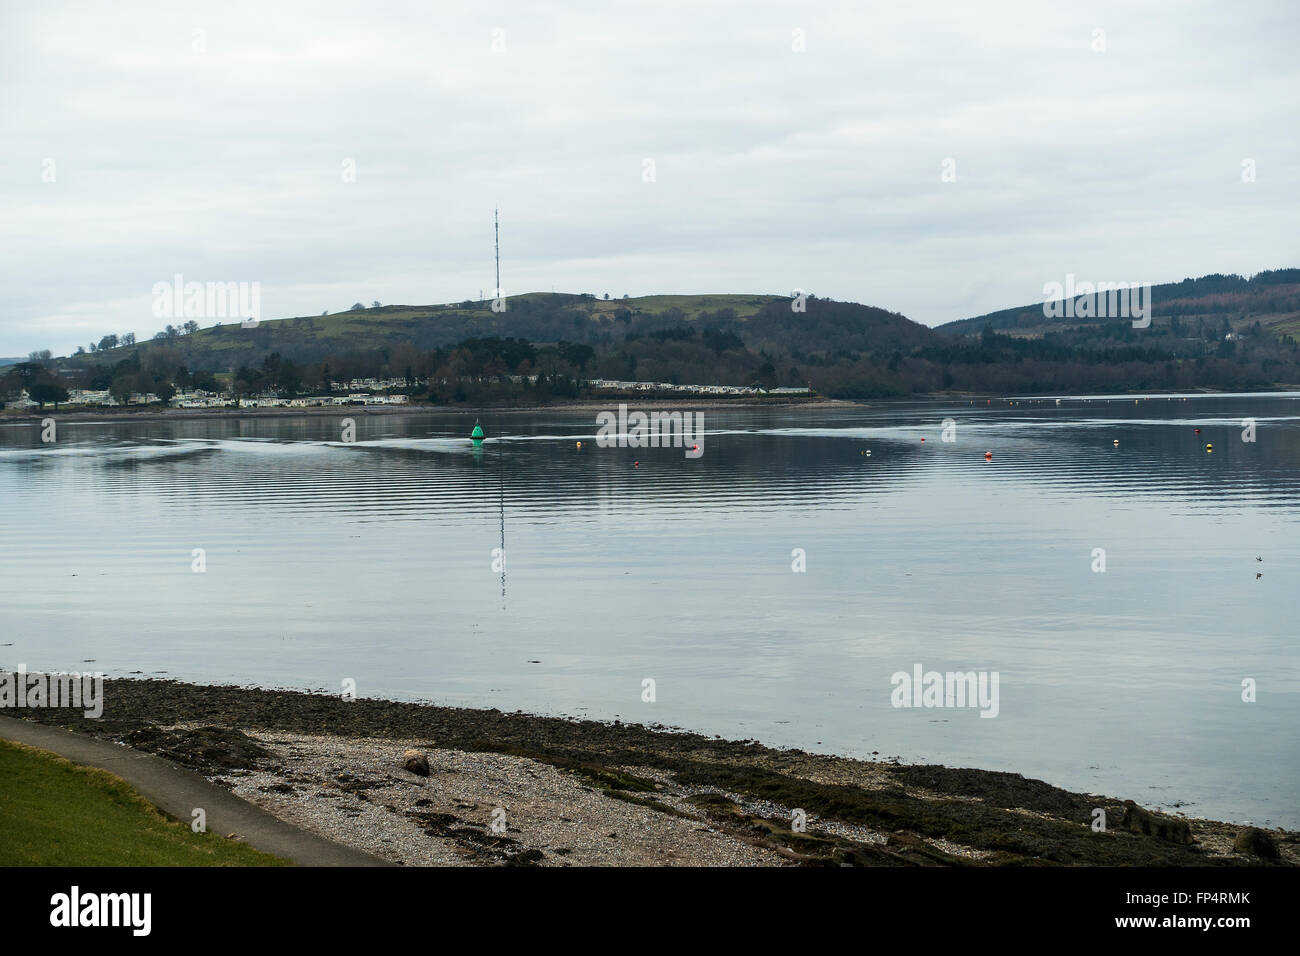 The Entrance to The Gare Loch off The River Clyde near Helensburgh Argyll and Bute Scotland United Kingdom UK - Stock Image